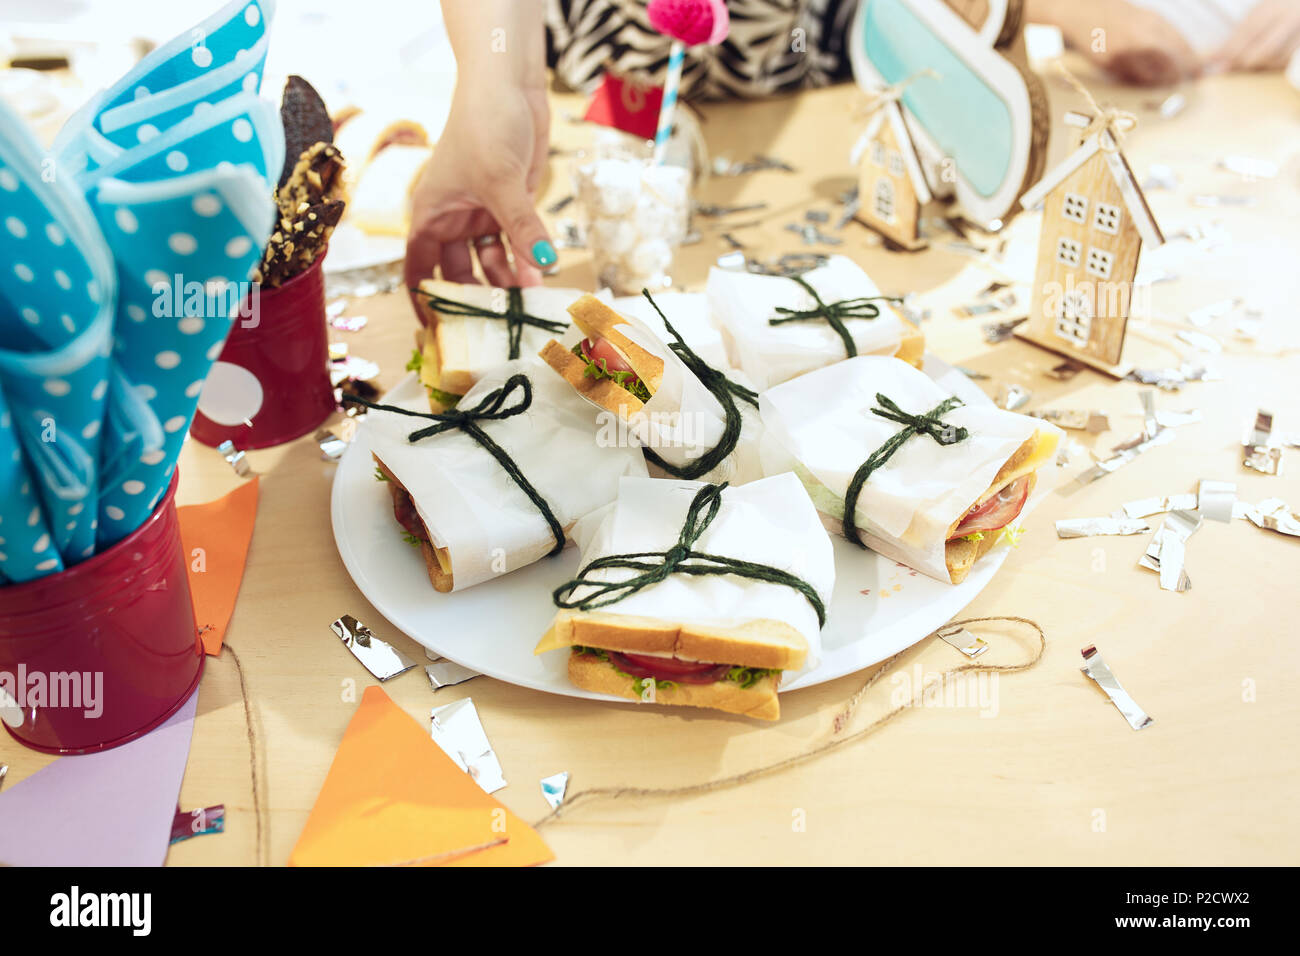 Girl Birthday Decorations Table Setting From Above With Cakes Drinks And Party Gadgets